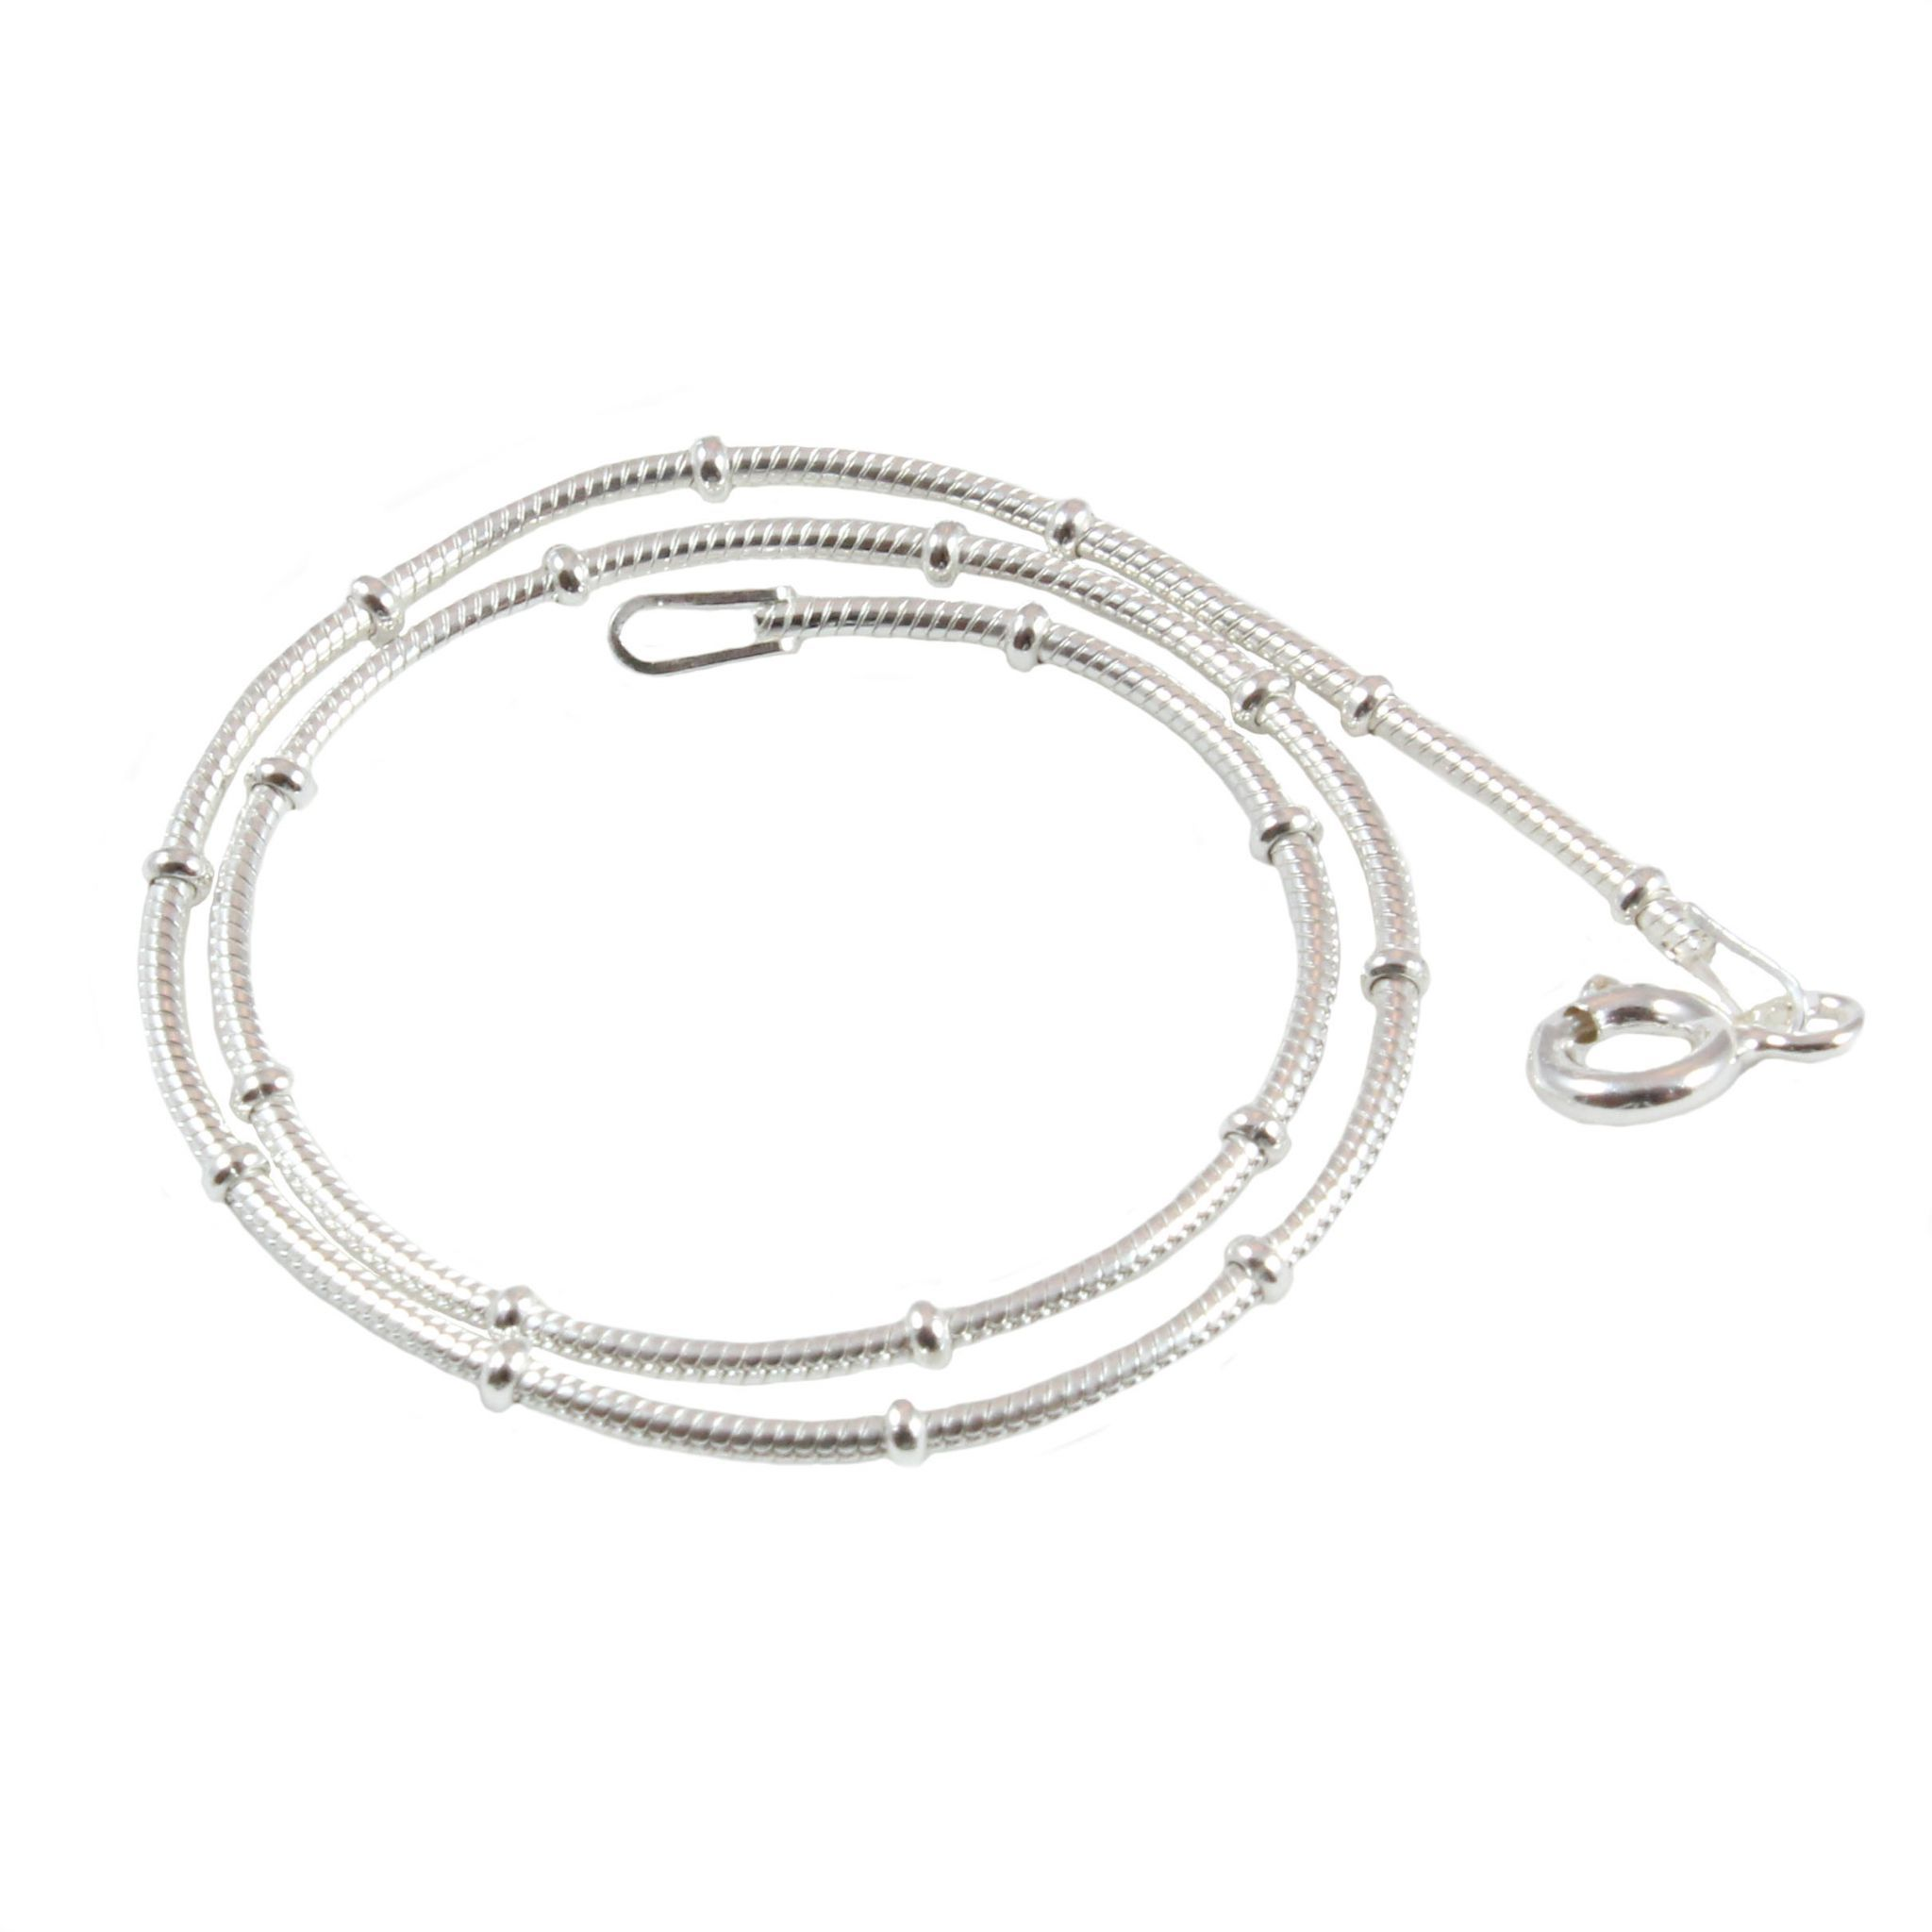 parade market link unicef indian silver close bracelets anklet sterling jewelry ankle uk elephant product